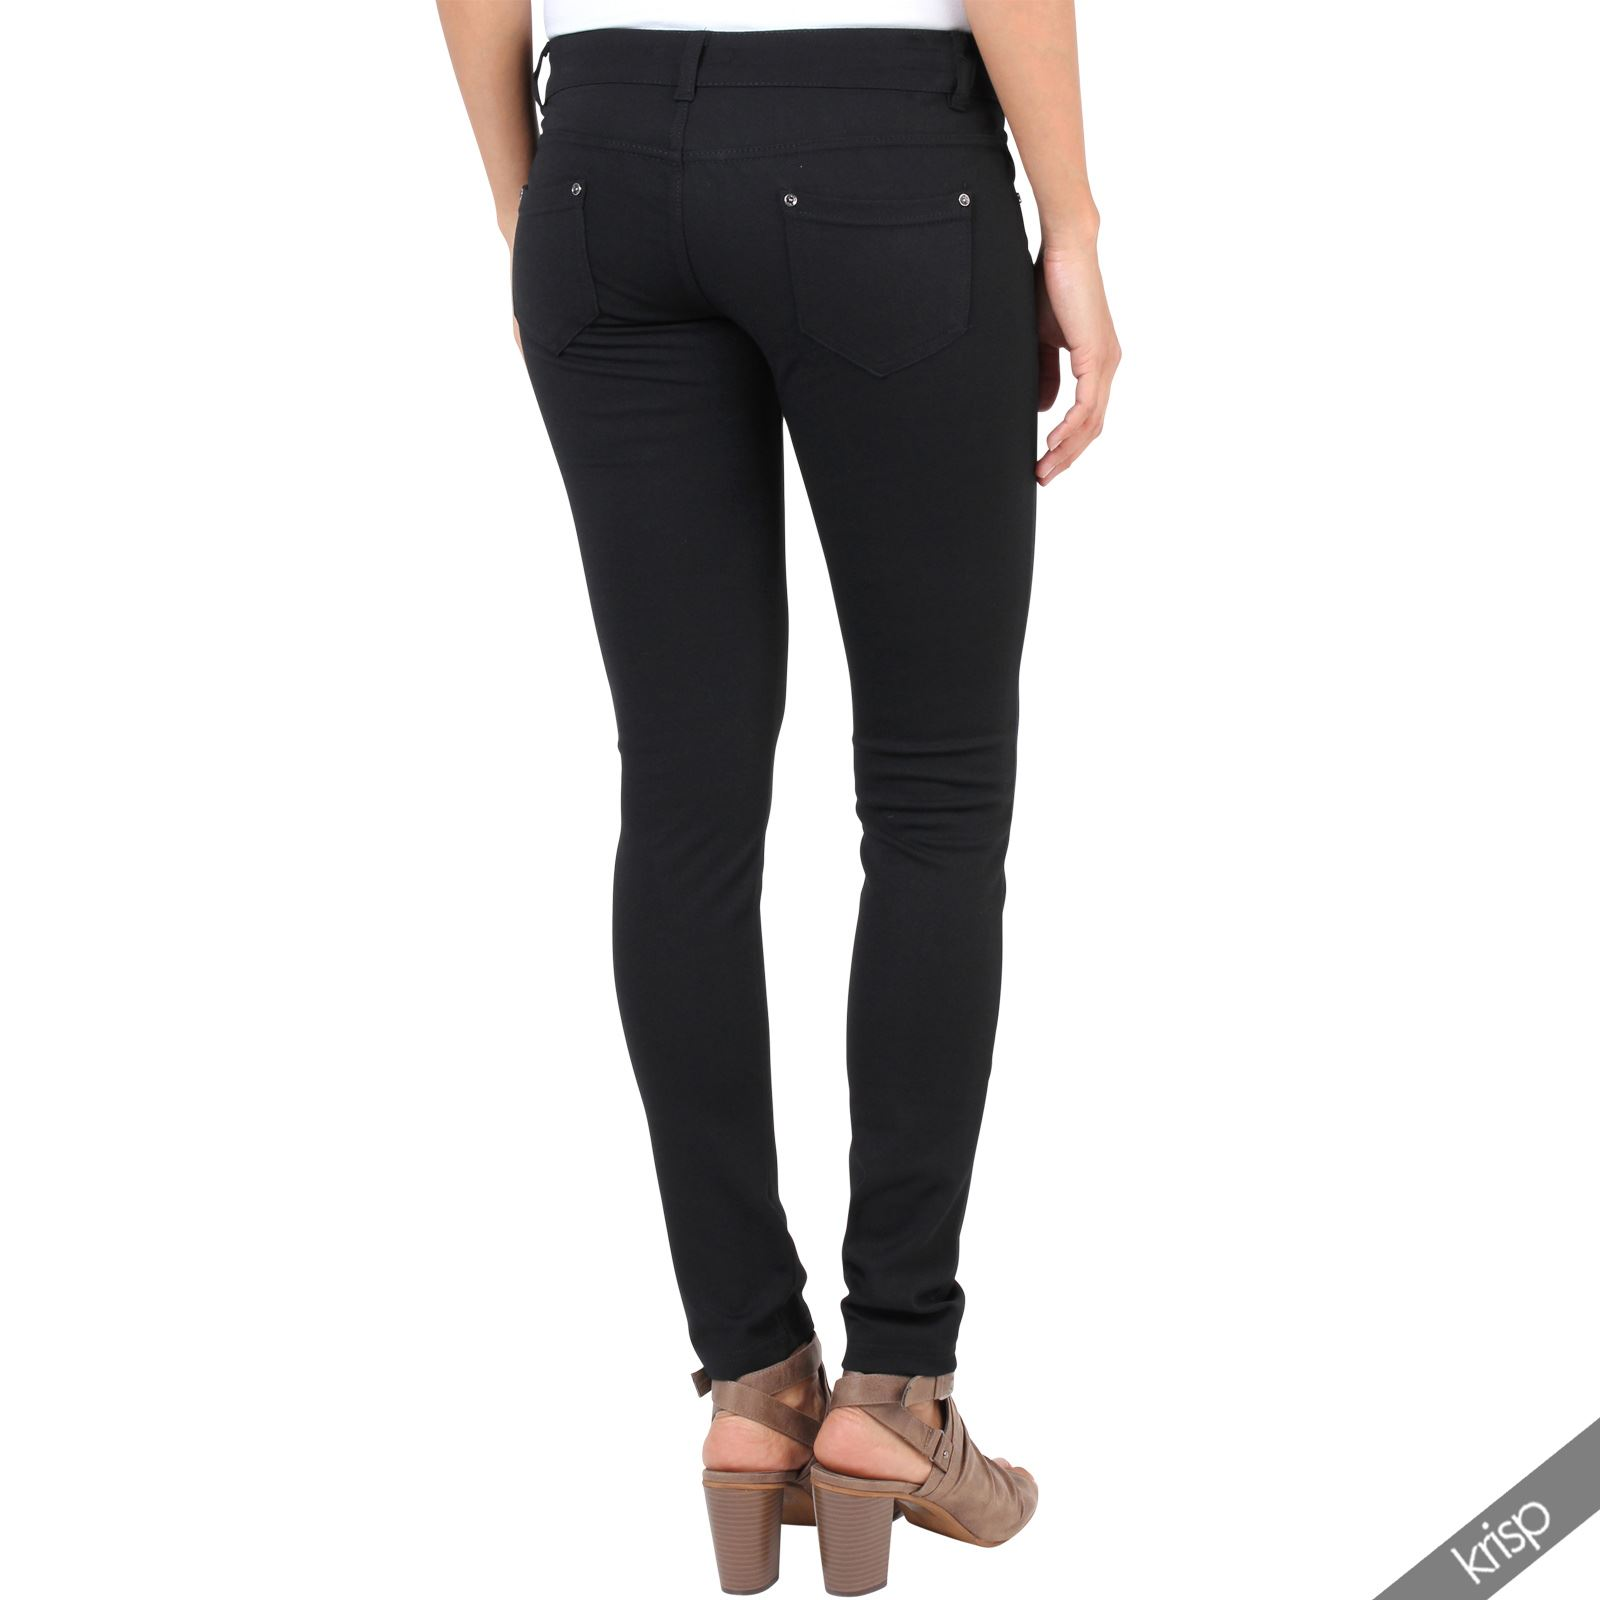 Wonderful About Womens Stretch Skinny Fit Jeans Leggings Jeggings Smart Casual